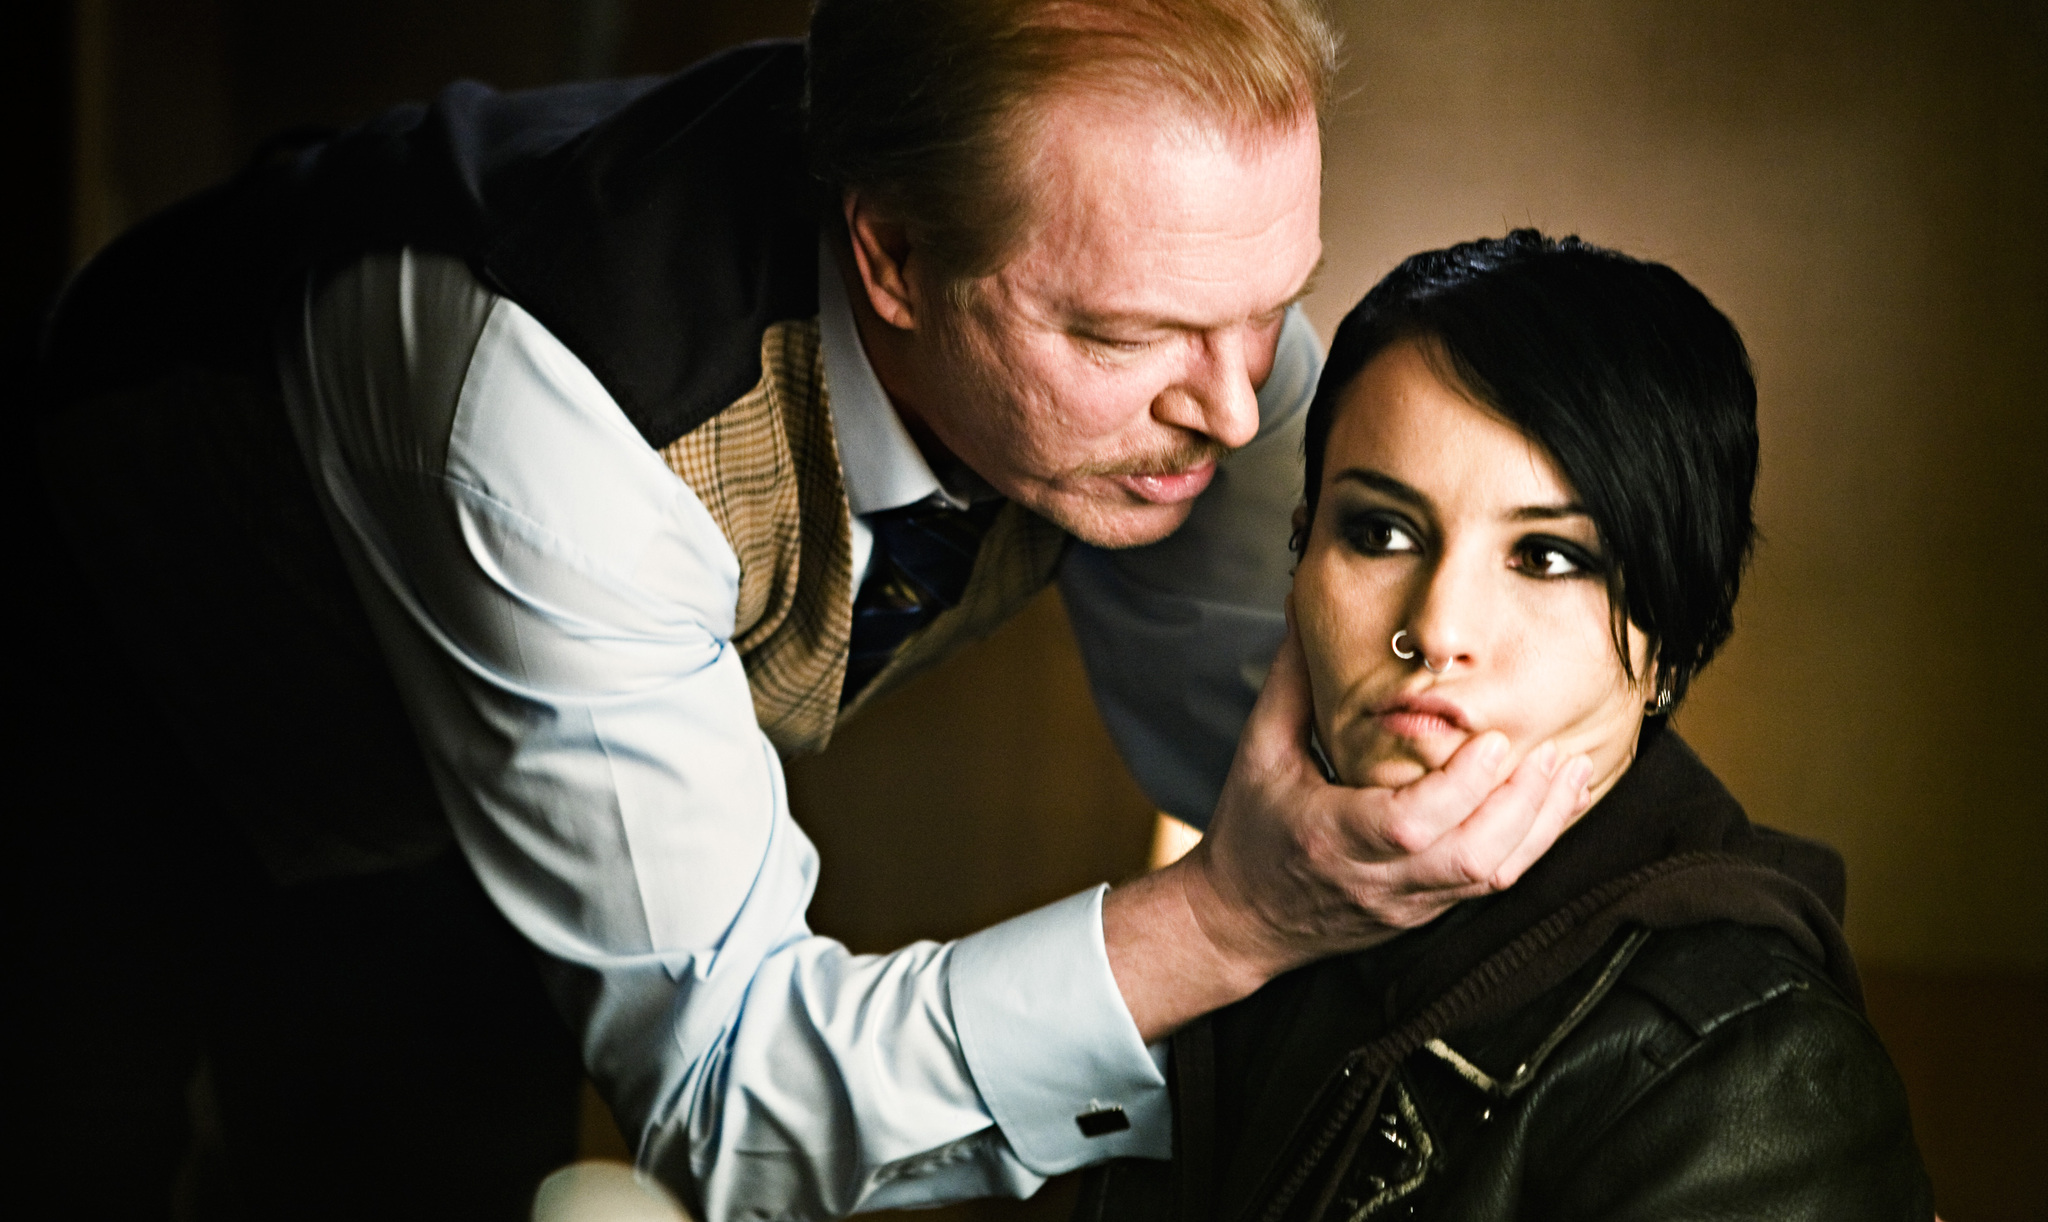 Peter Andersson and Noomi Rapace in Män som hatar kvinnor (2009)